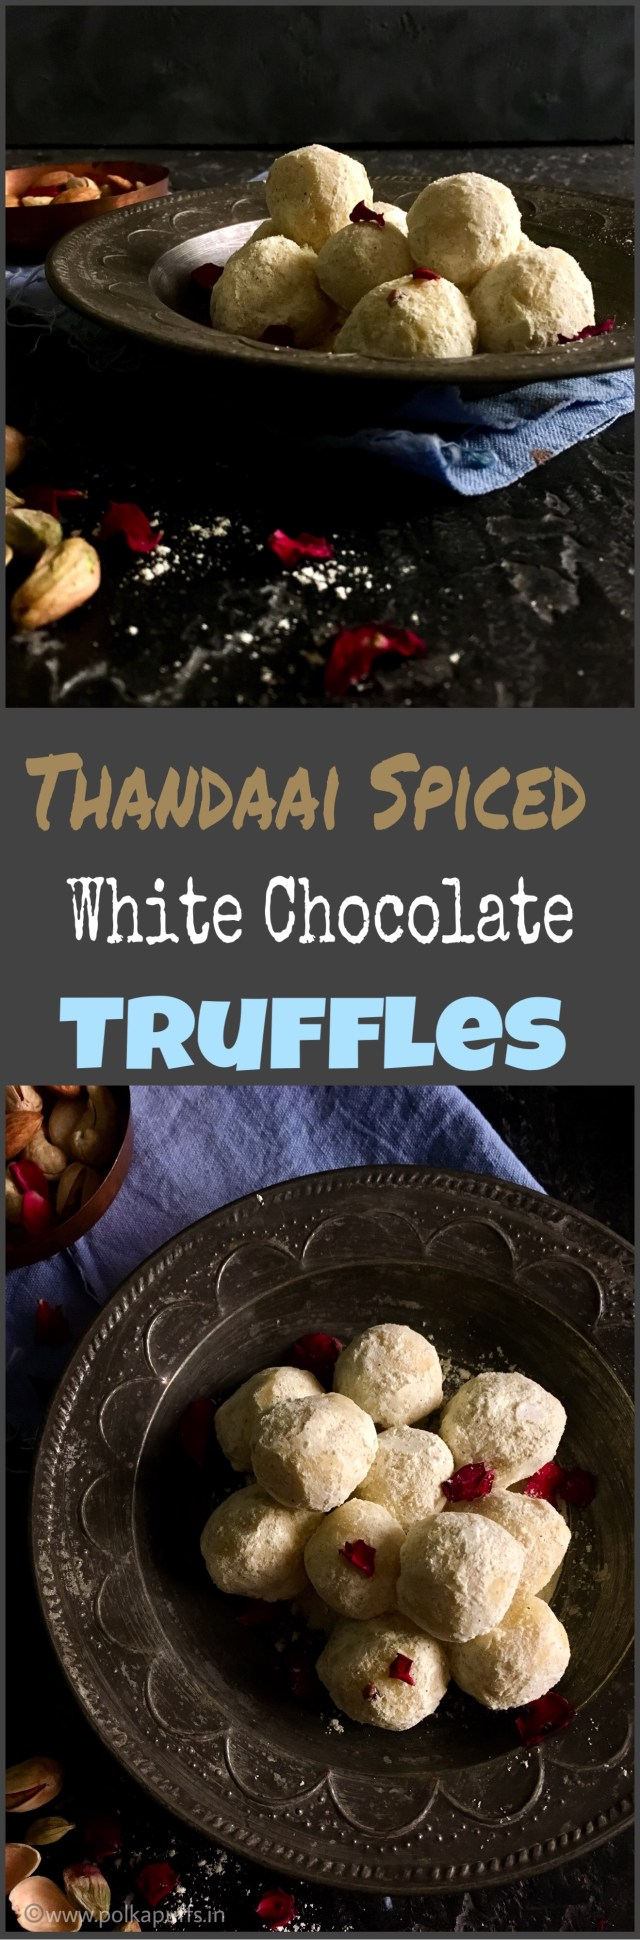 Thandaai Spiced White Chocolate Truffles